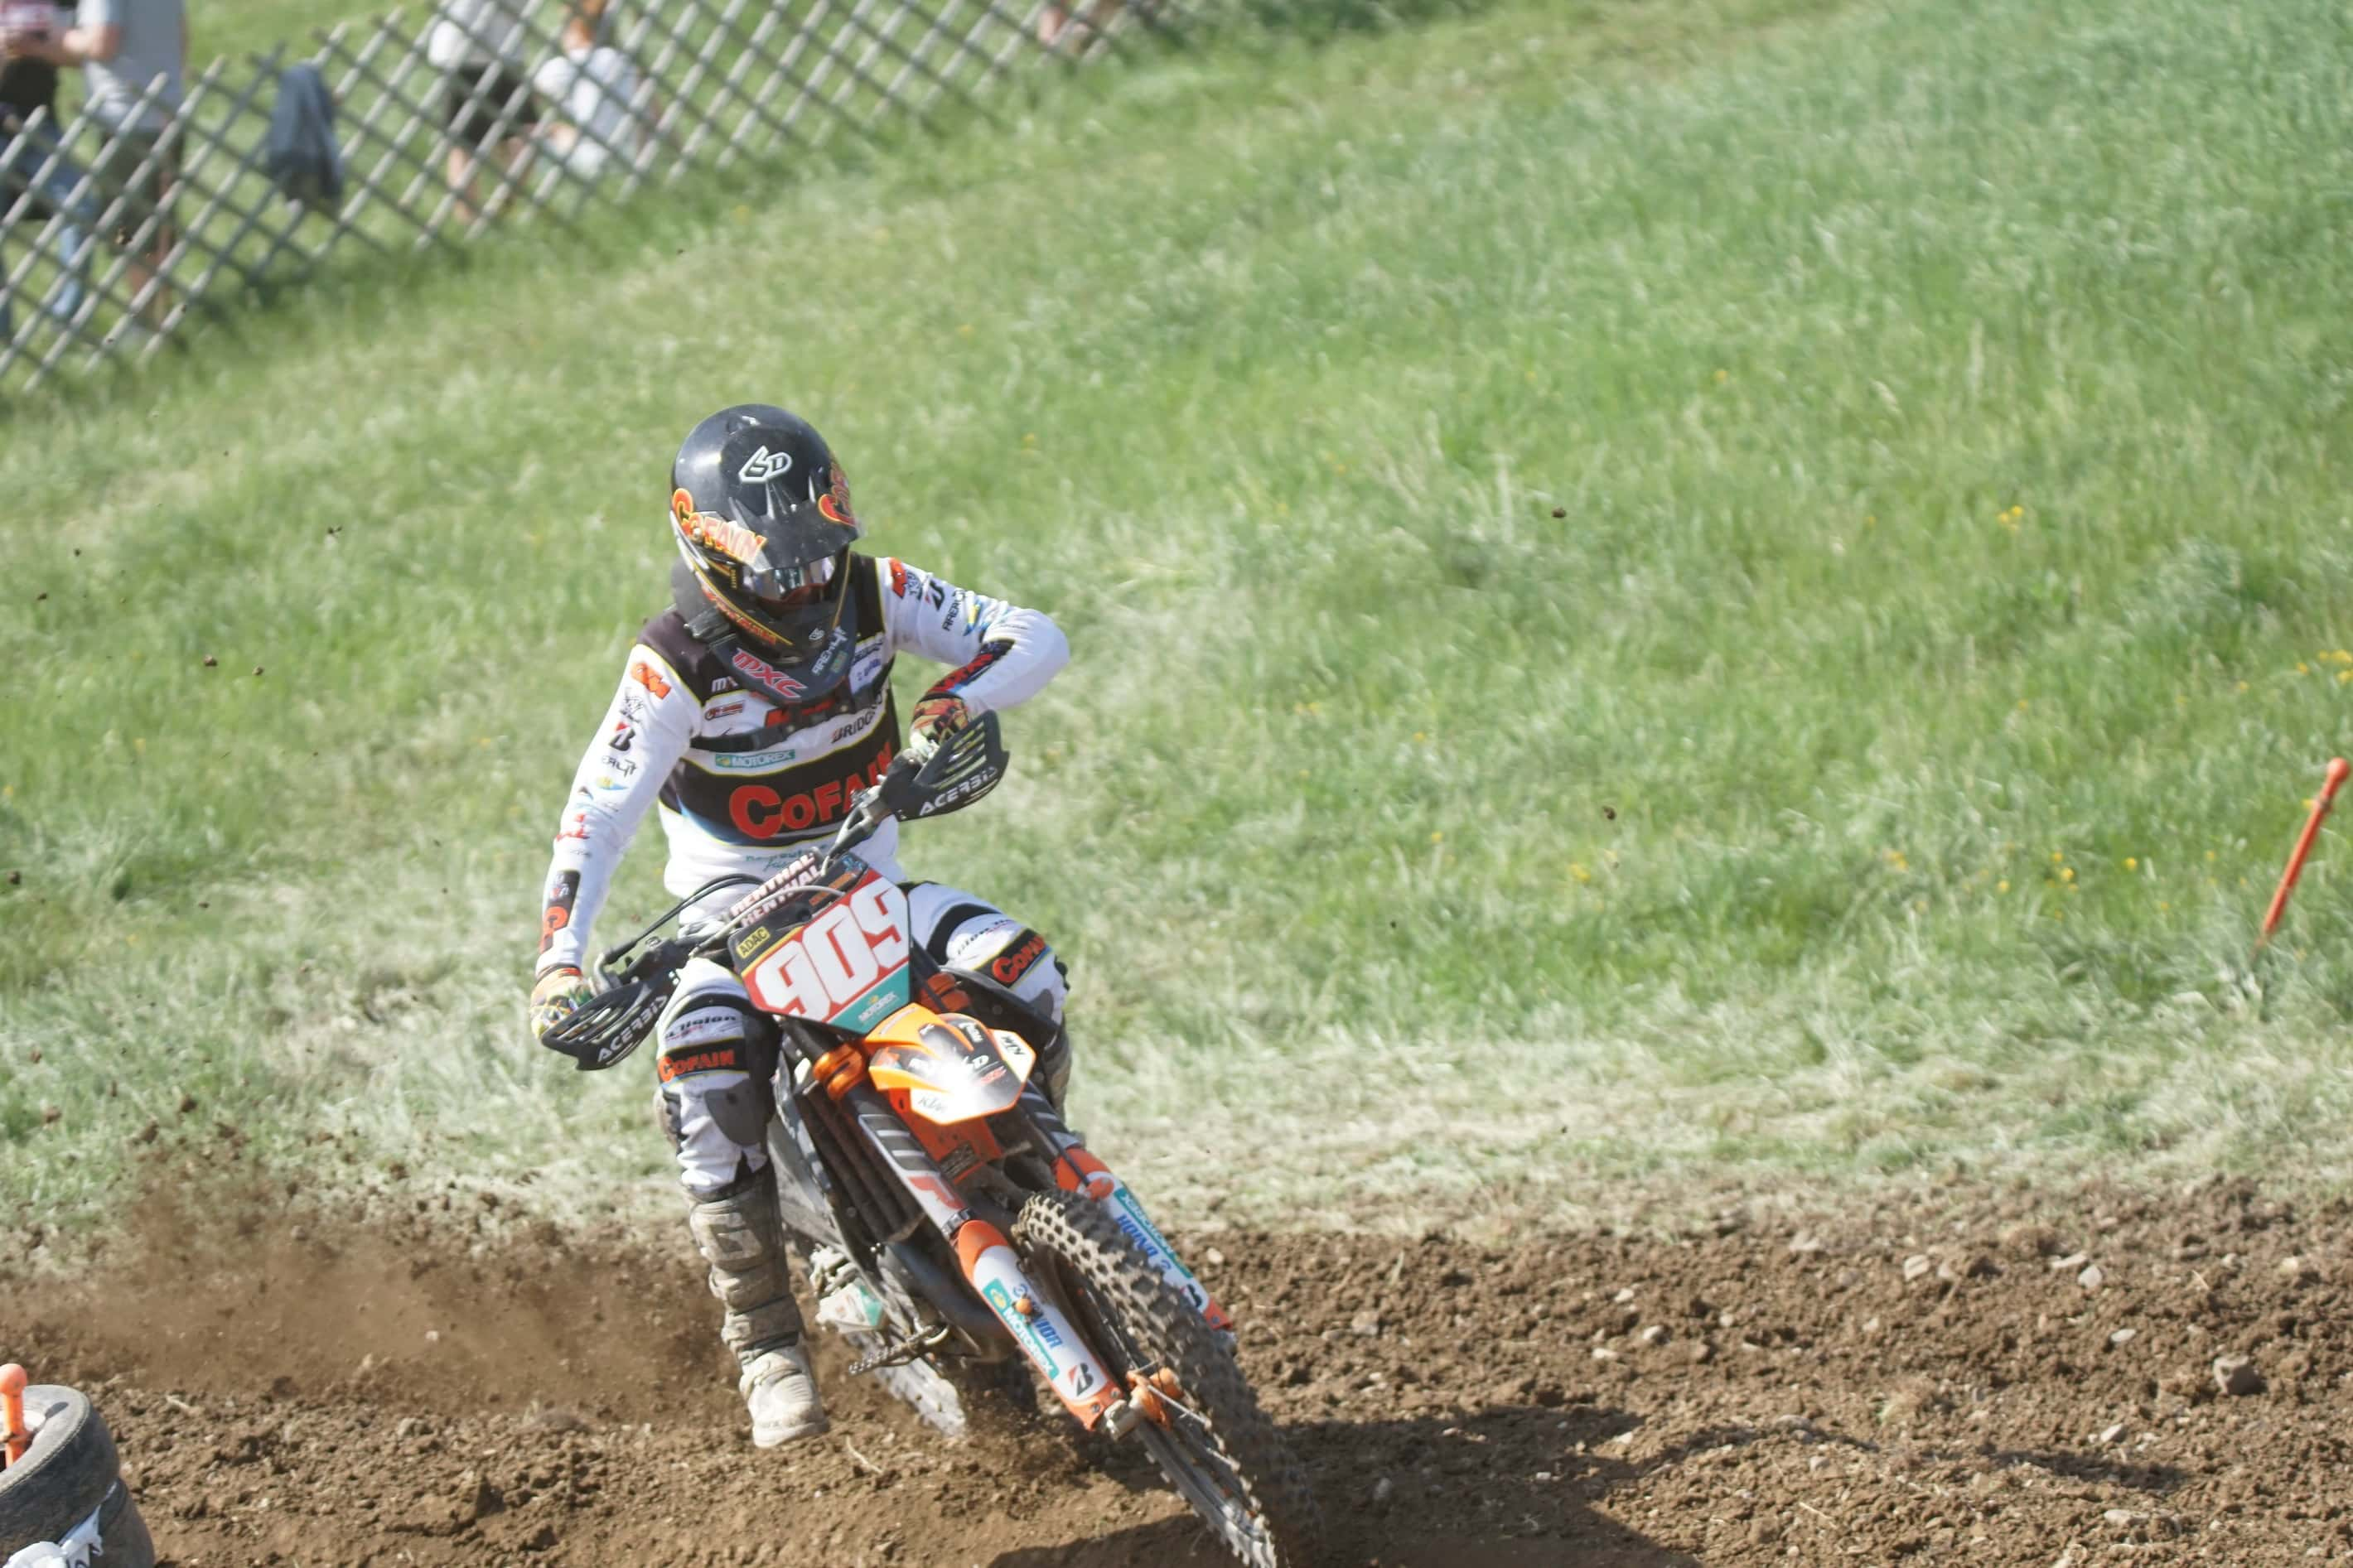 DSC 844_Moto Cross Sittendorf Teil1 am 29.04.2018